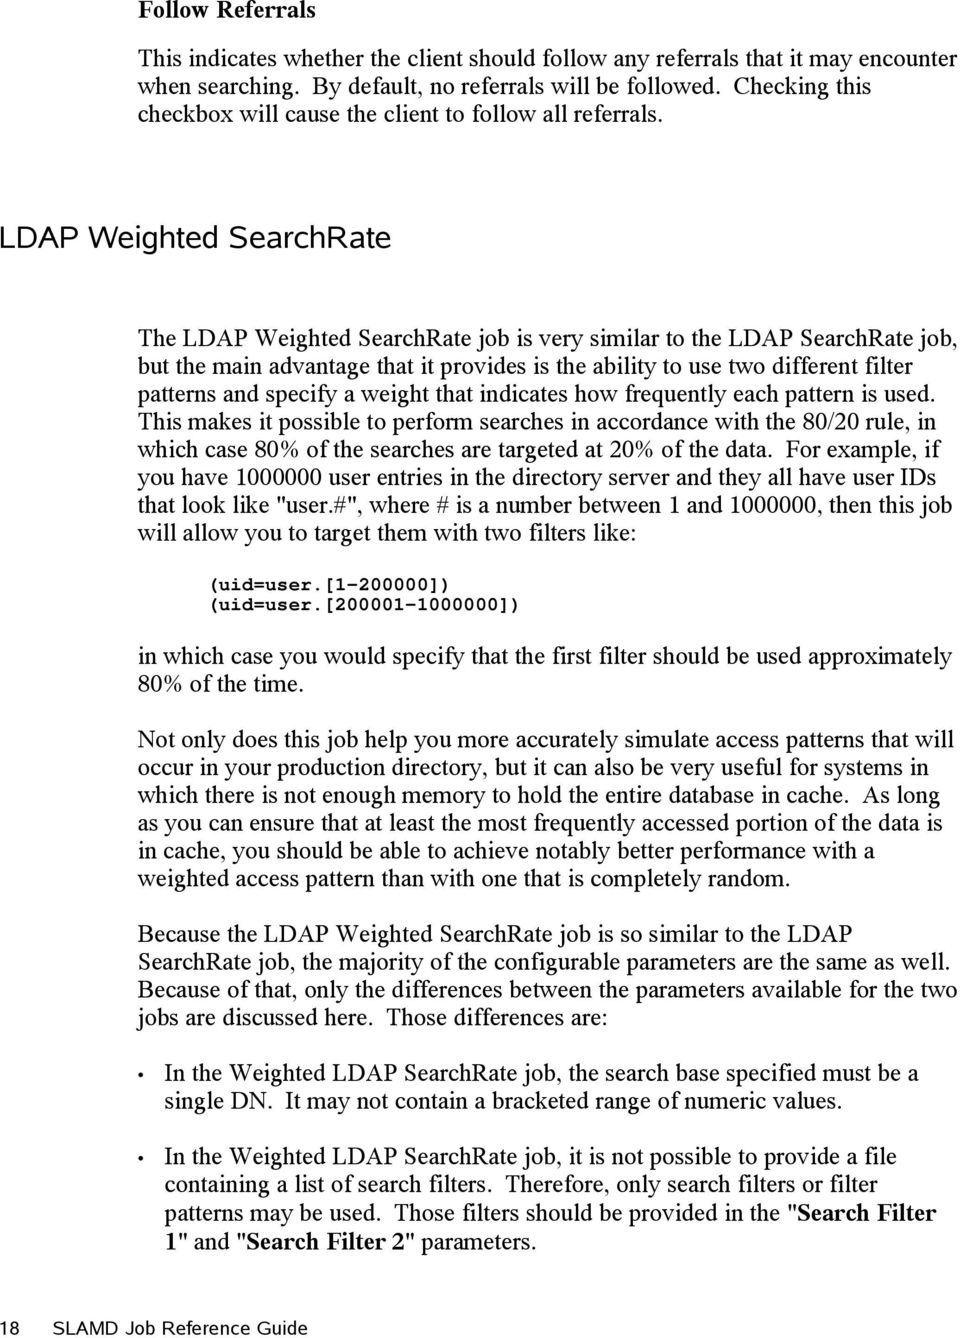 LDAP Weighted SearchRate The LDAP Weighted SearchRate job is very similar to the LDAP SearchRate job, but the main advantage that it provides is the ability to use two different filter patterns and